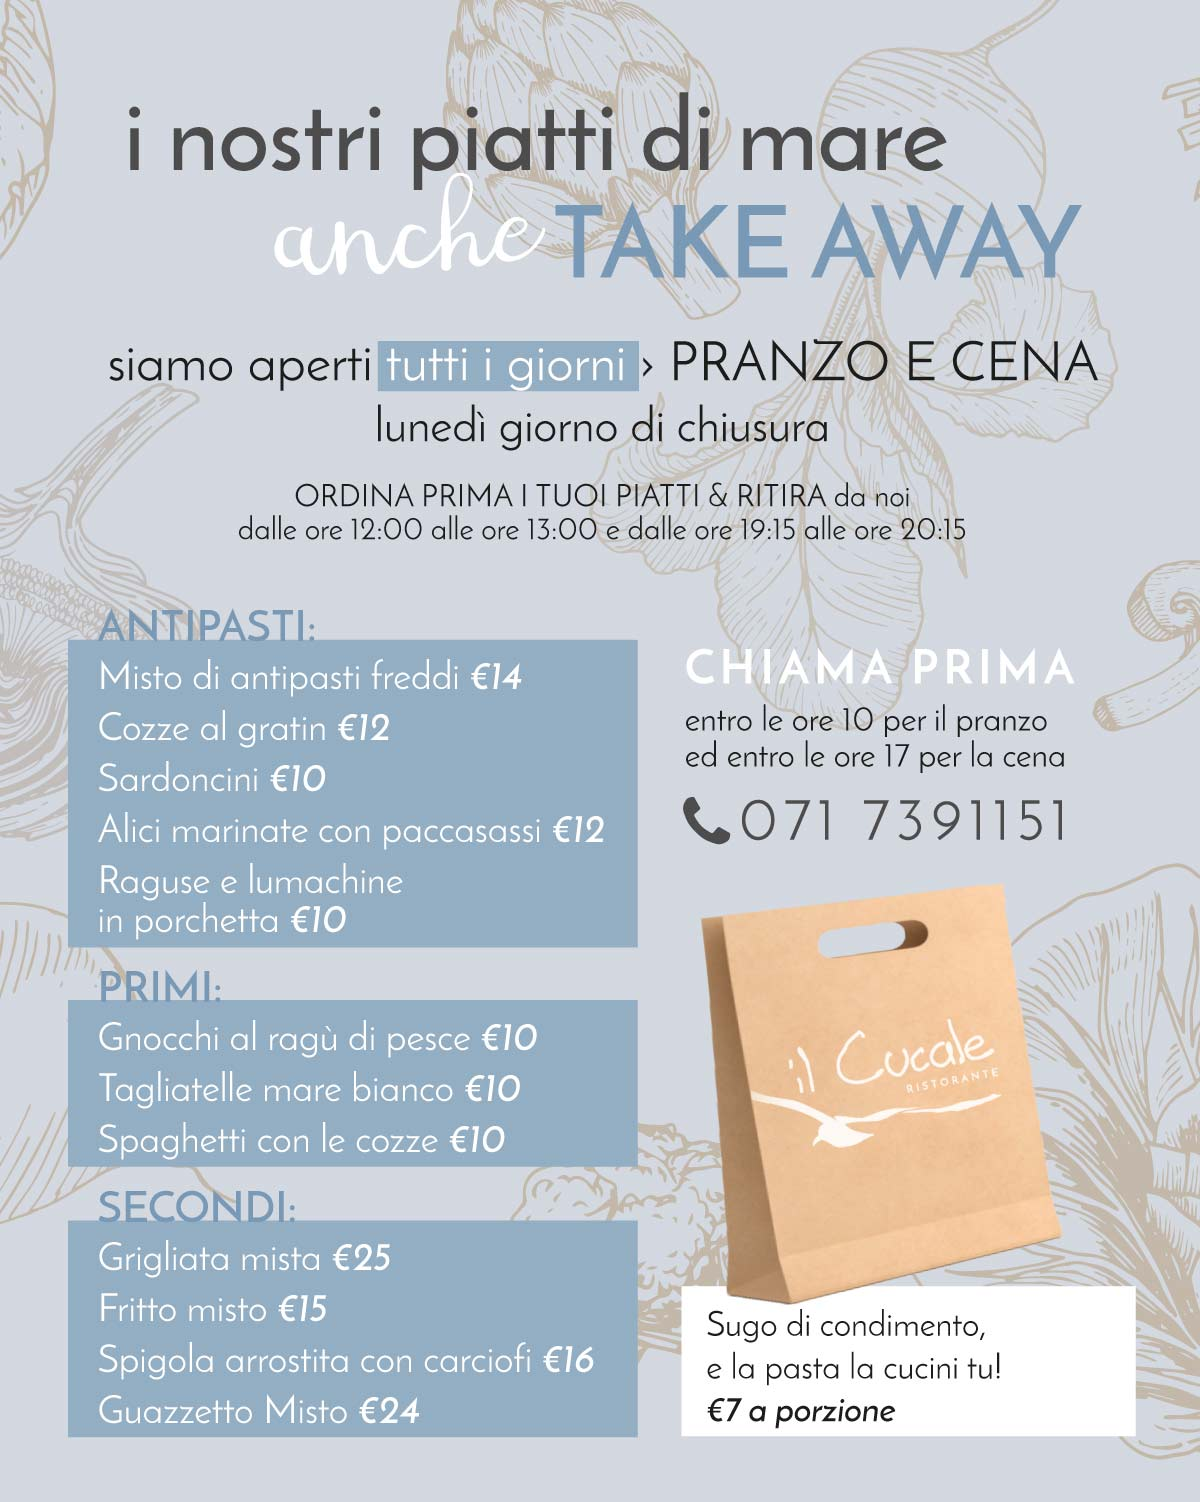 POST TAKE AWAY 02 maggio SITO